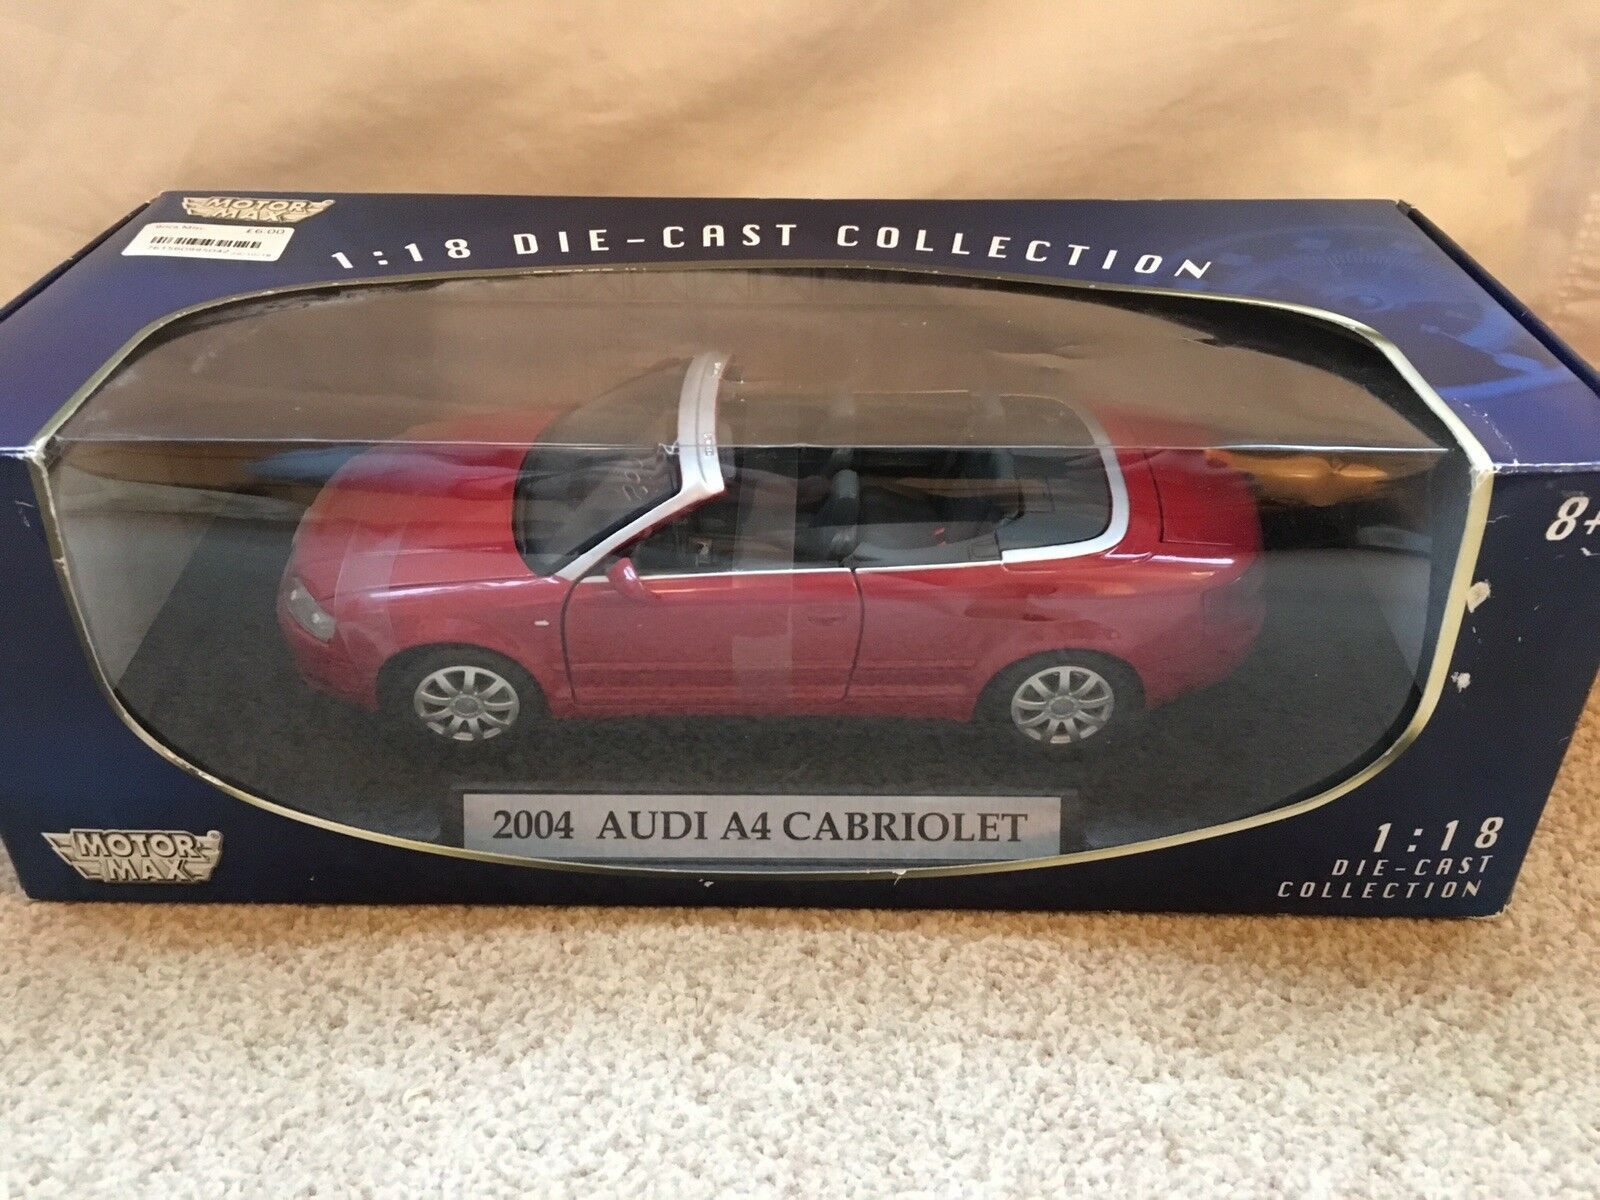 2004 Audi A4 Cabriolet 1 18 Red. Collectible Diecast, Motor Max